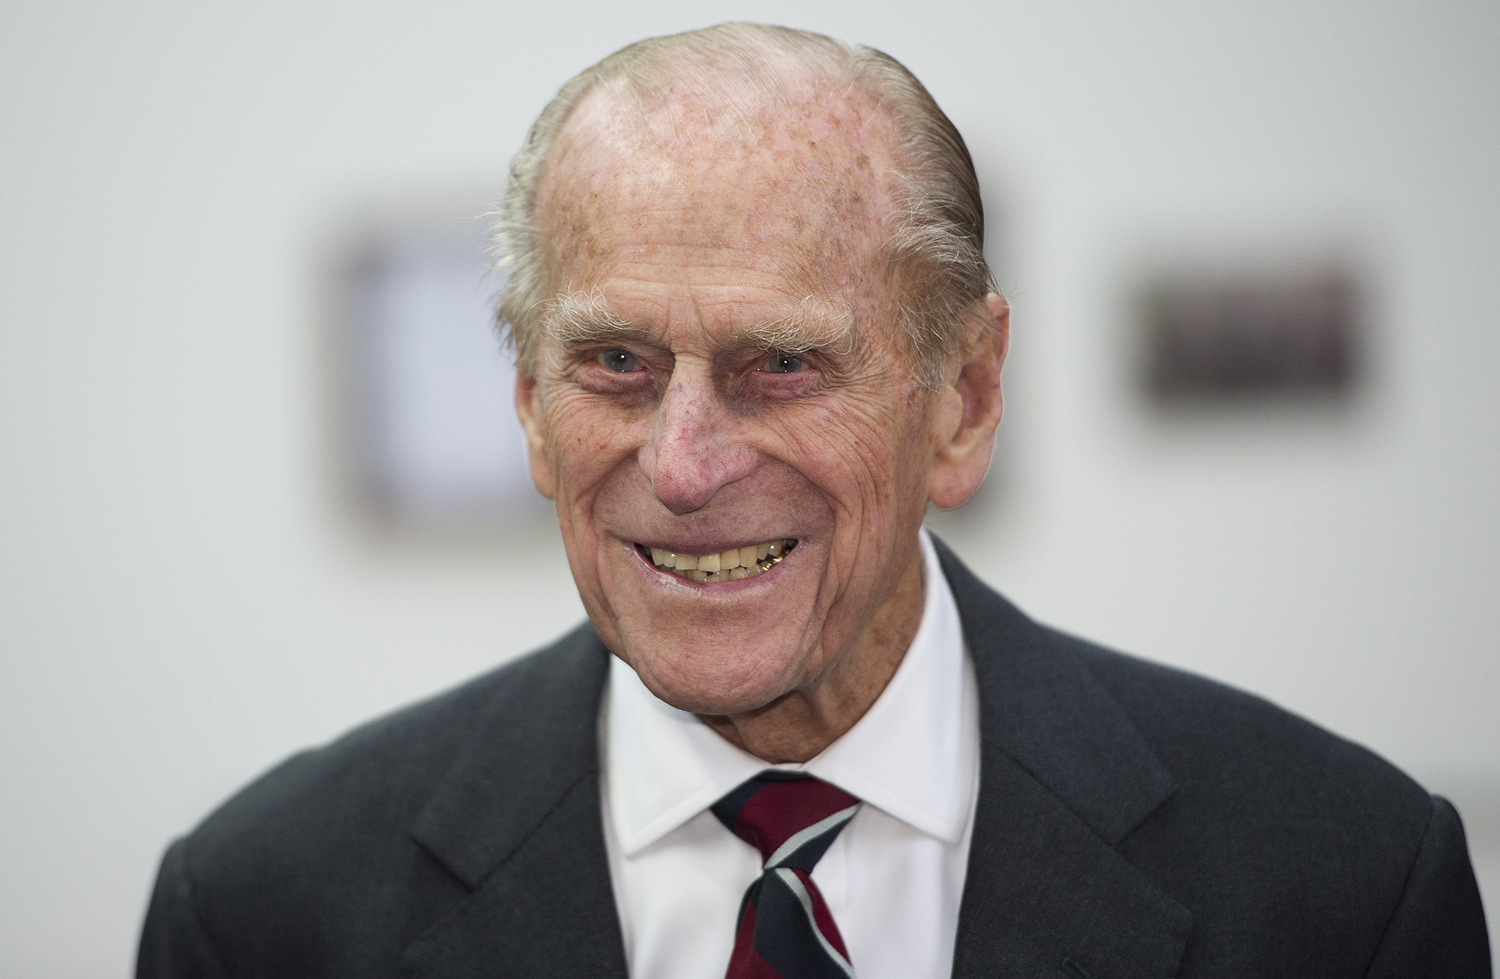 Prince Philip, the Duke of Edinburgh, attends the opening of  First World War in the Air  exhibition at the RAF Museum in Hendon, England, on Dec. 2, 2014